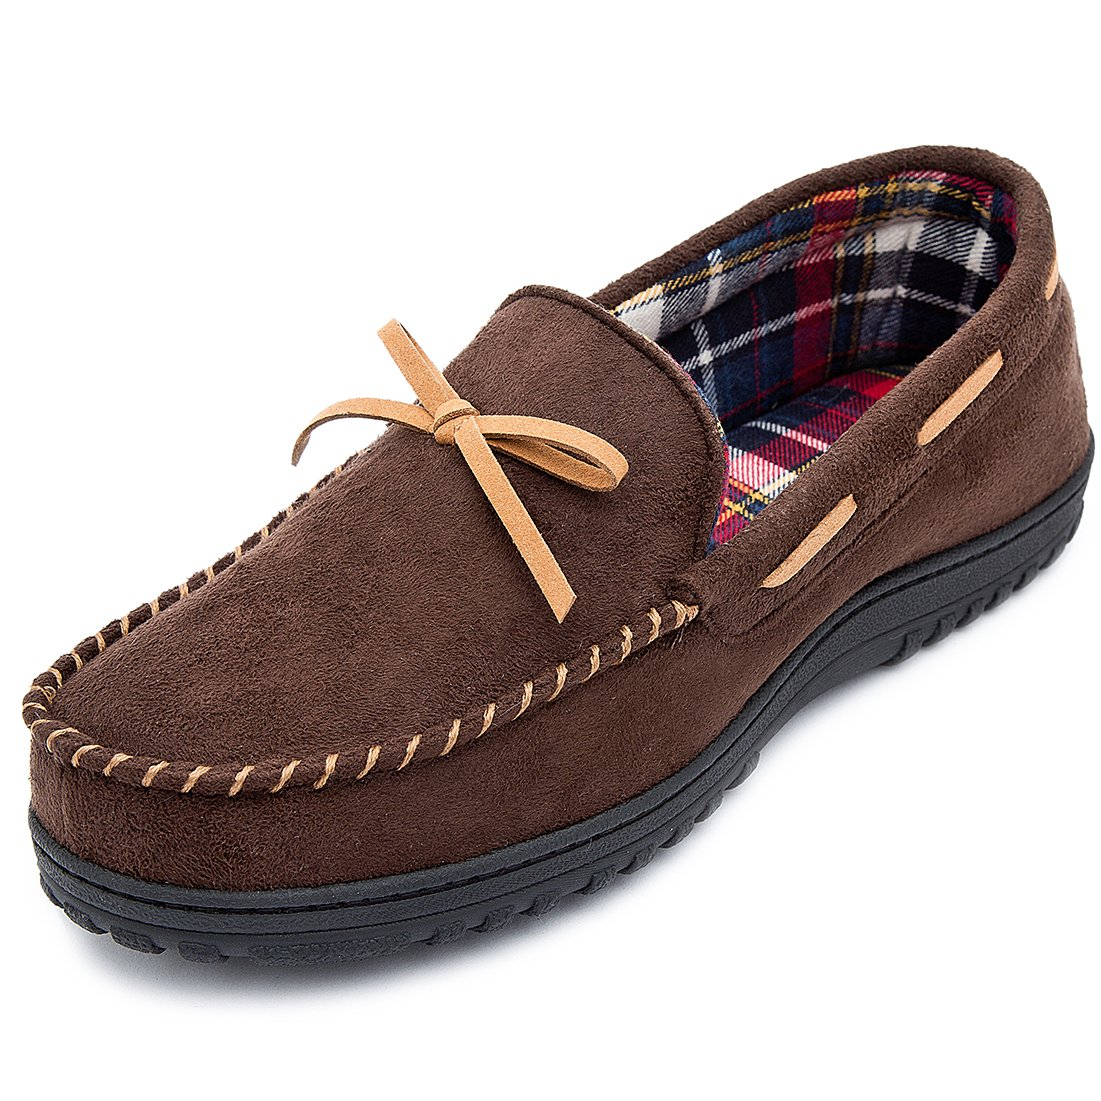 RockDove Men's Memory Foam Faux Moosehide Moccasin Slippers(12 D(M) US,Moose/Tan)